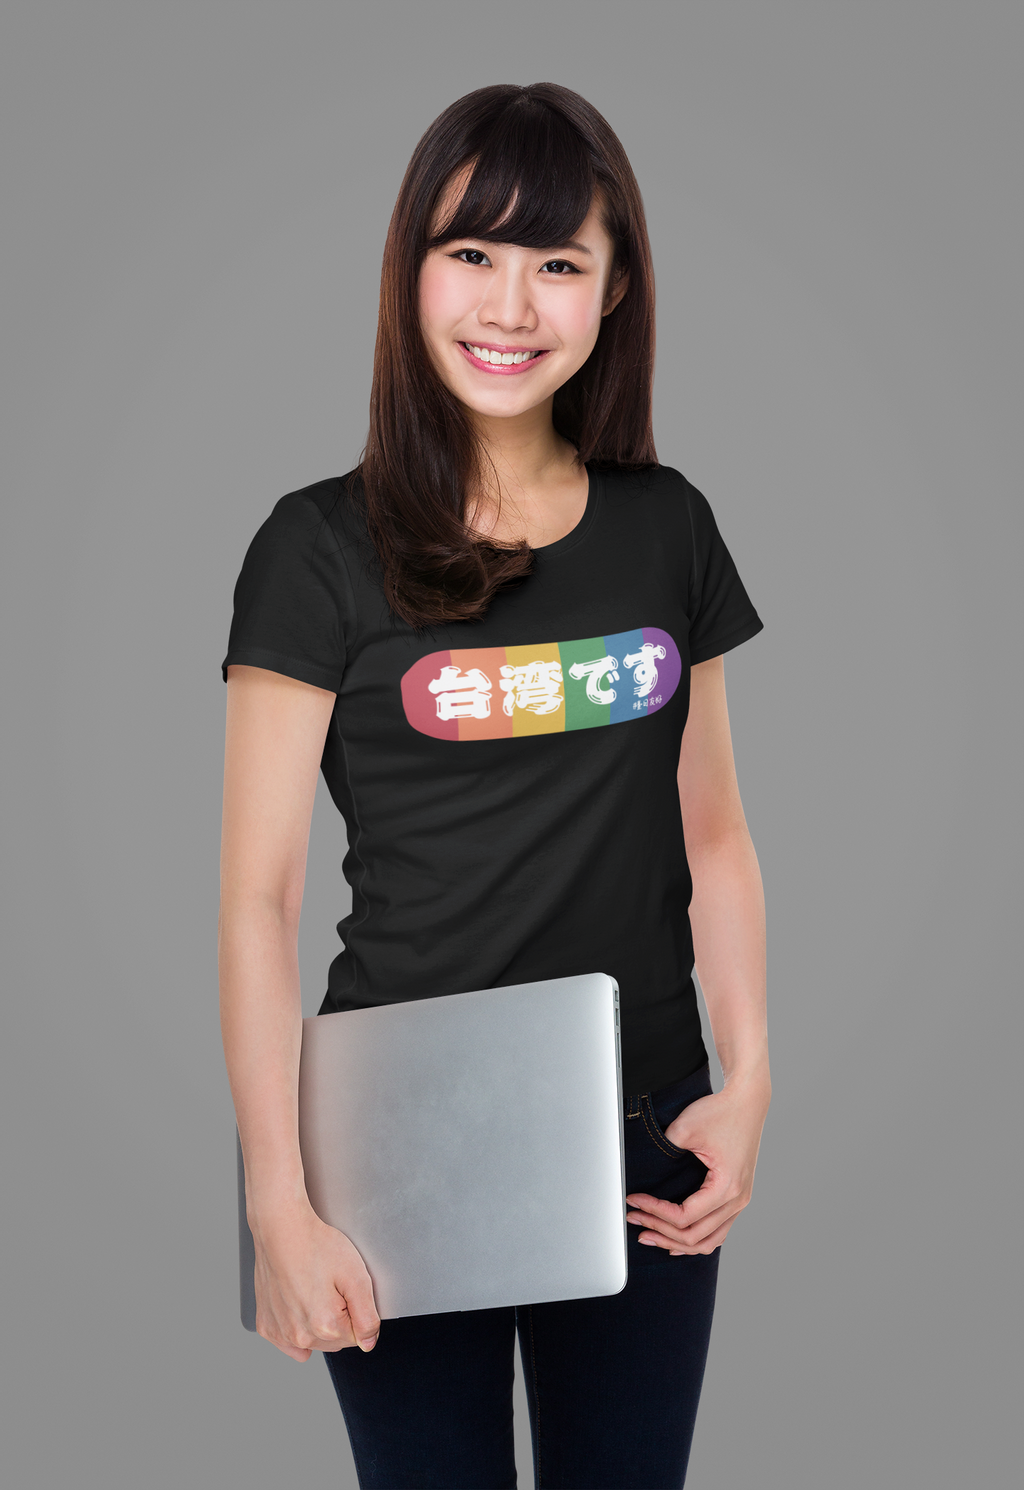 t-shirt-mockup-featuring-a-woman-holding-a-laptop-m2537-r-el2.png